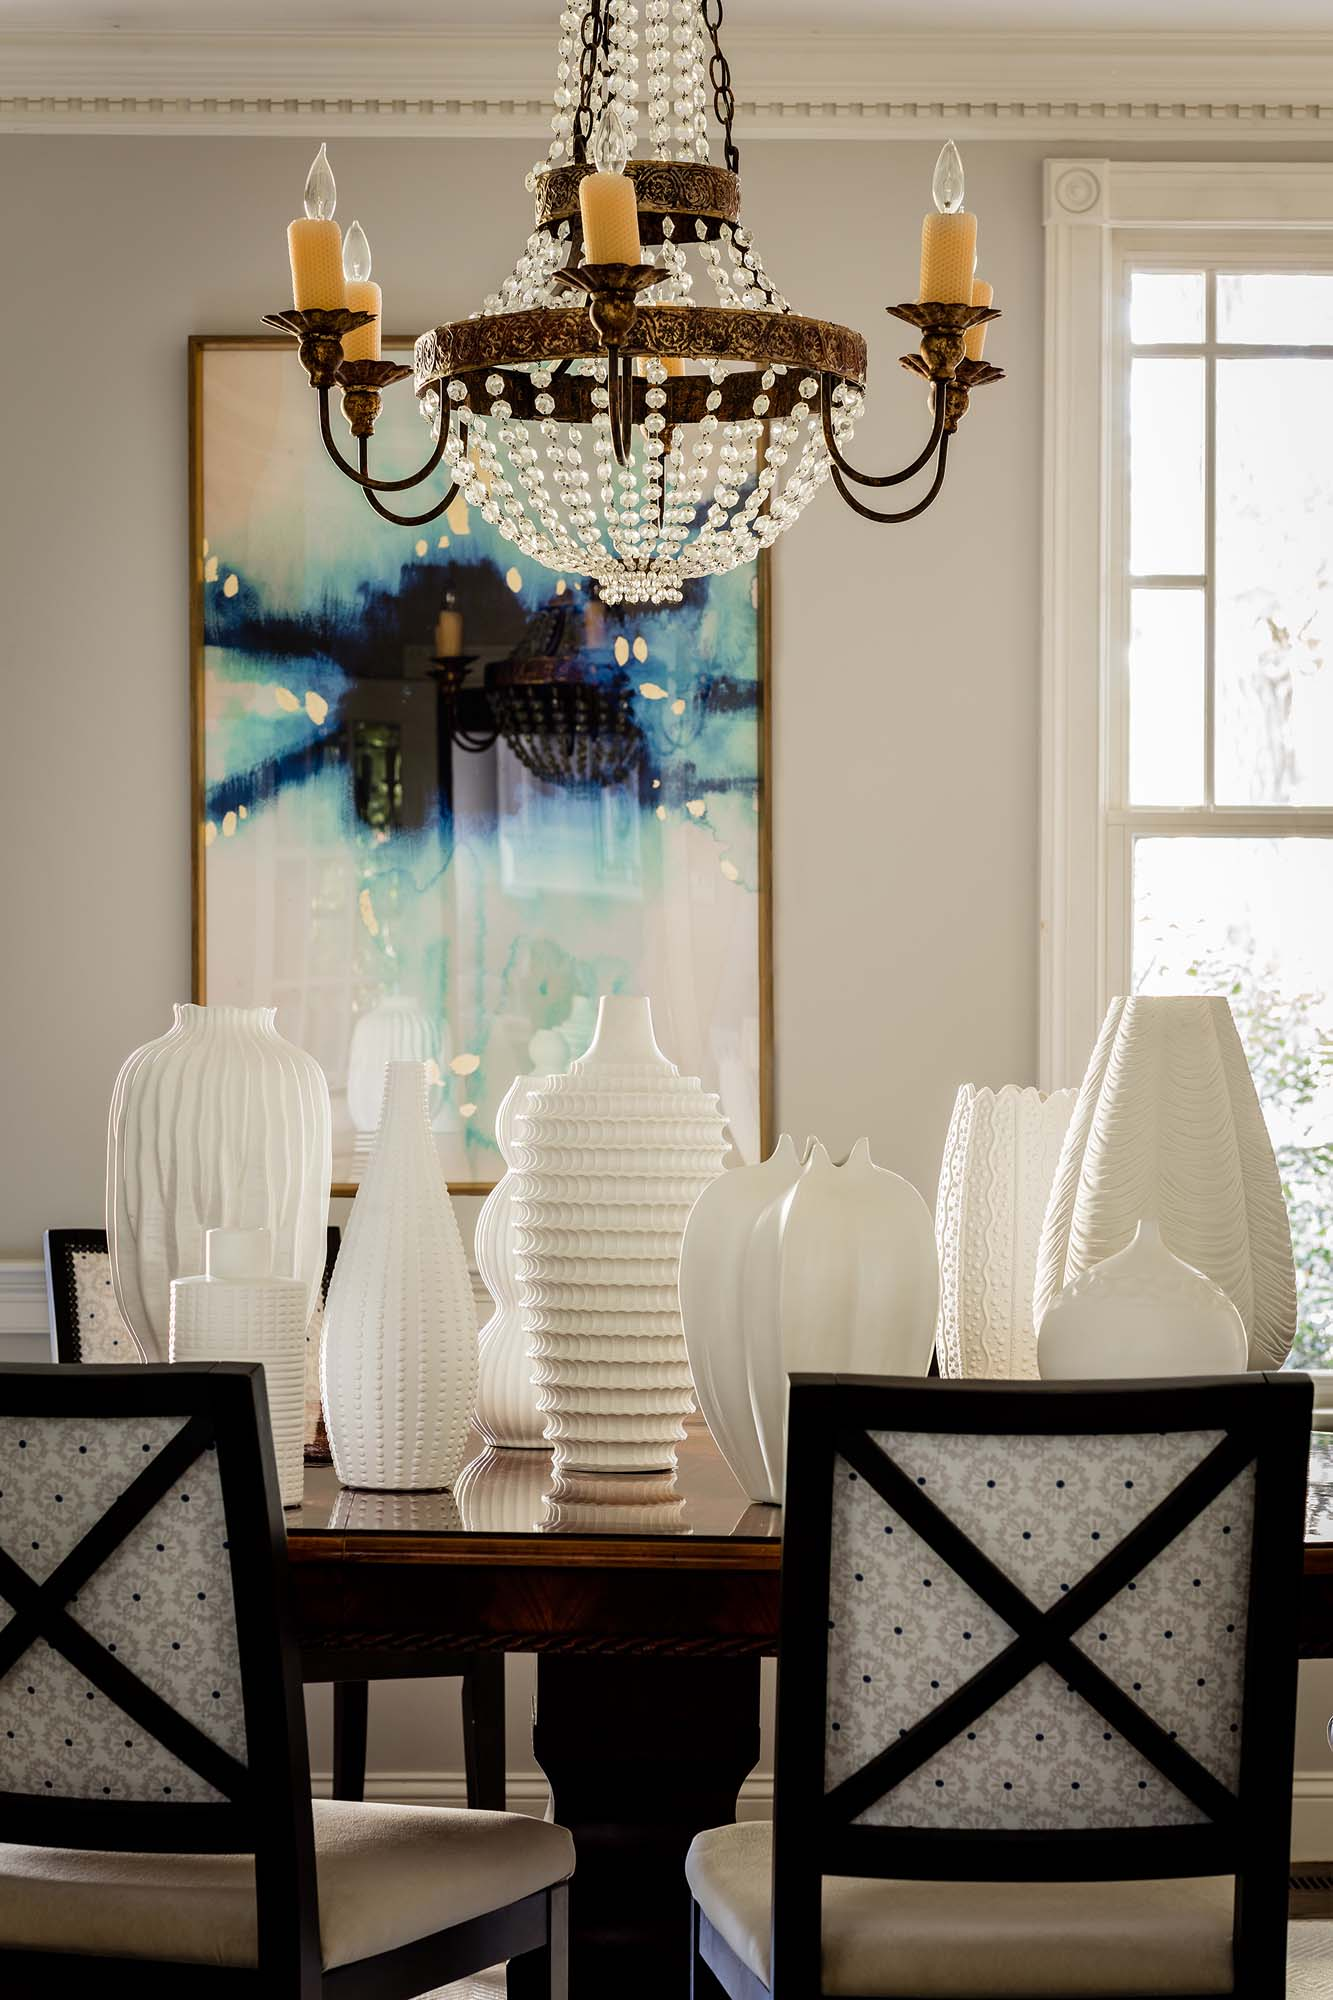 Dining room with wooden table, chairs, white modern style vases and unique style chandelier